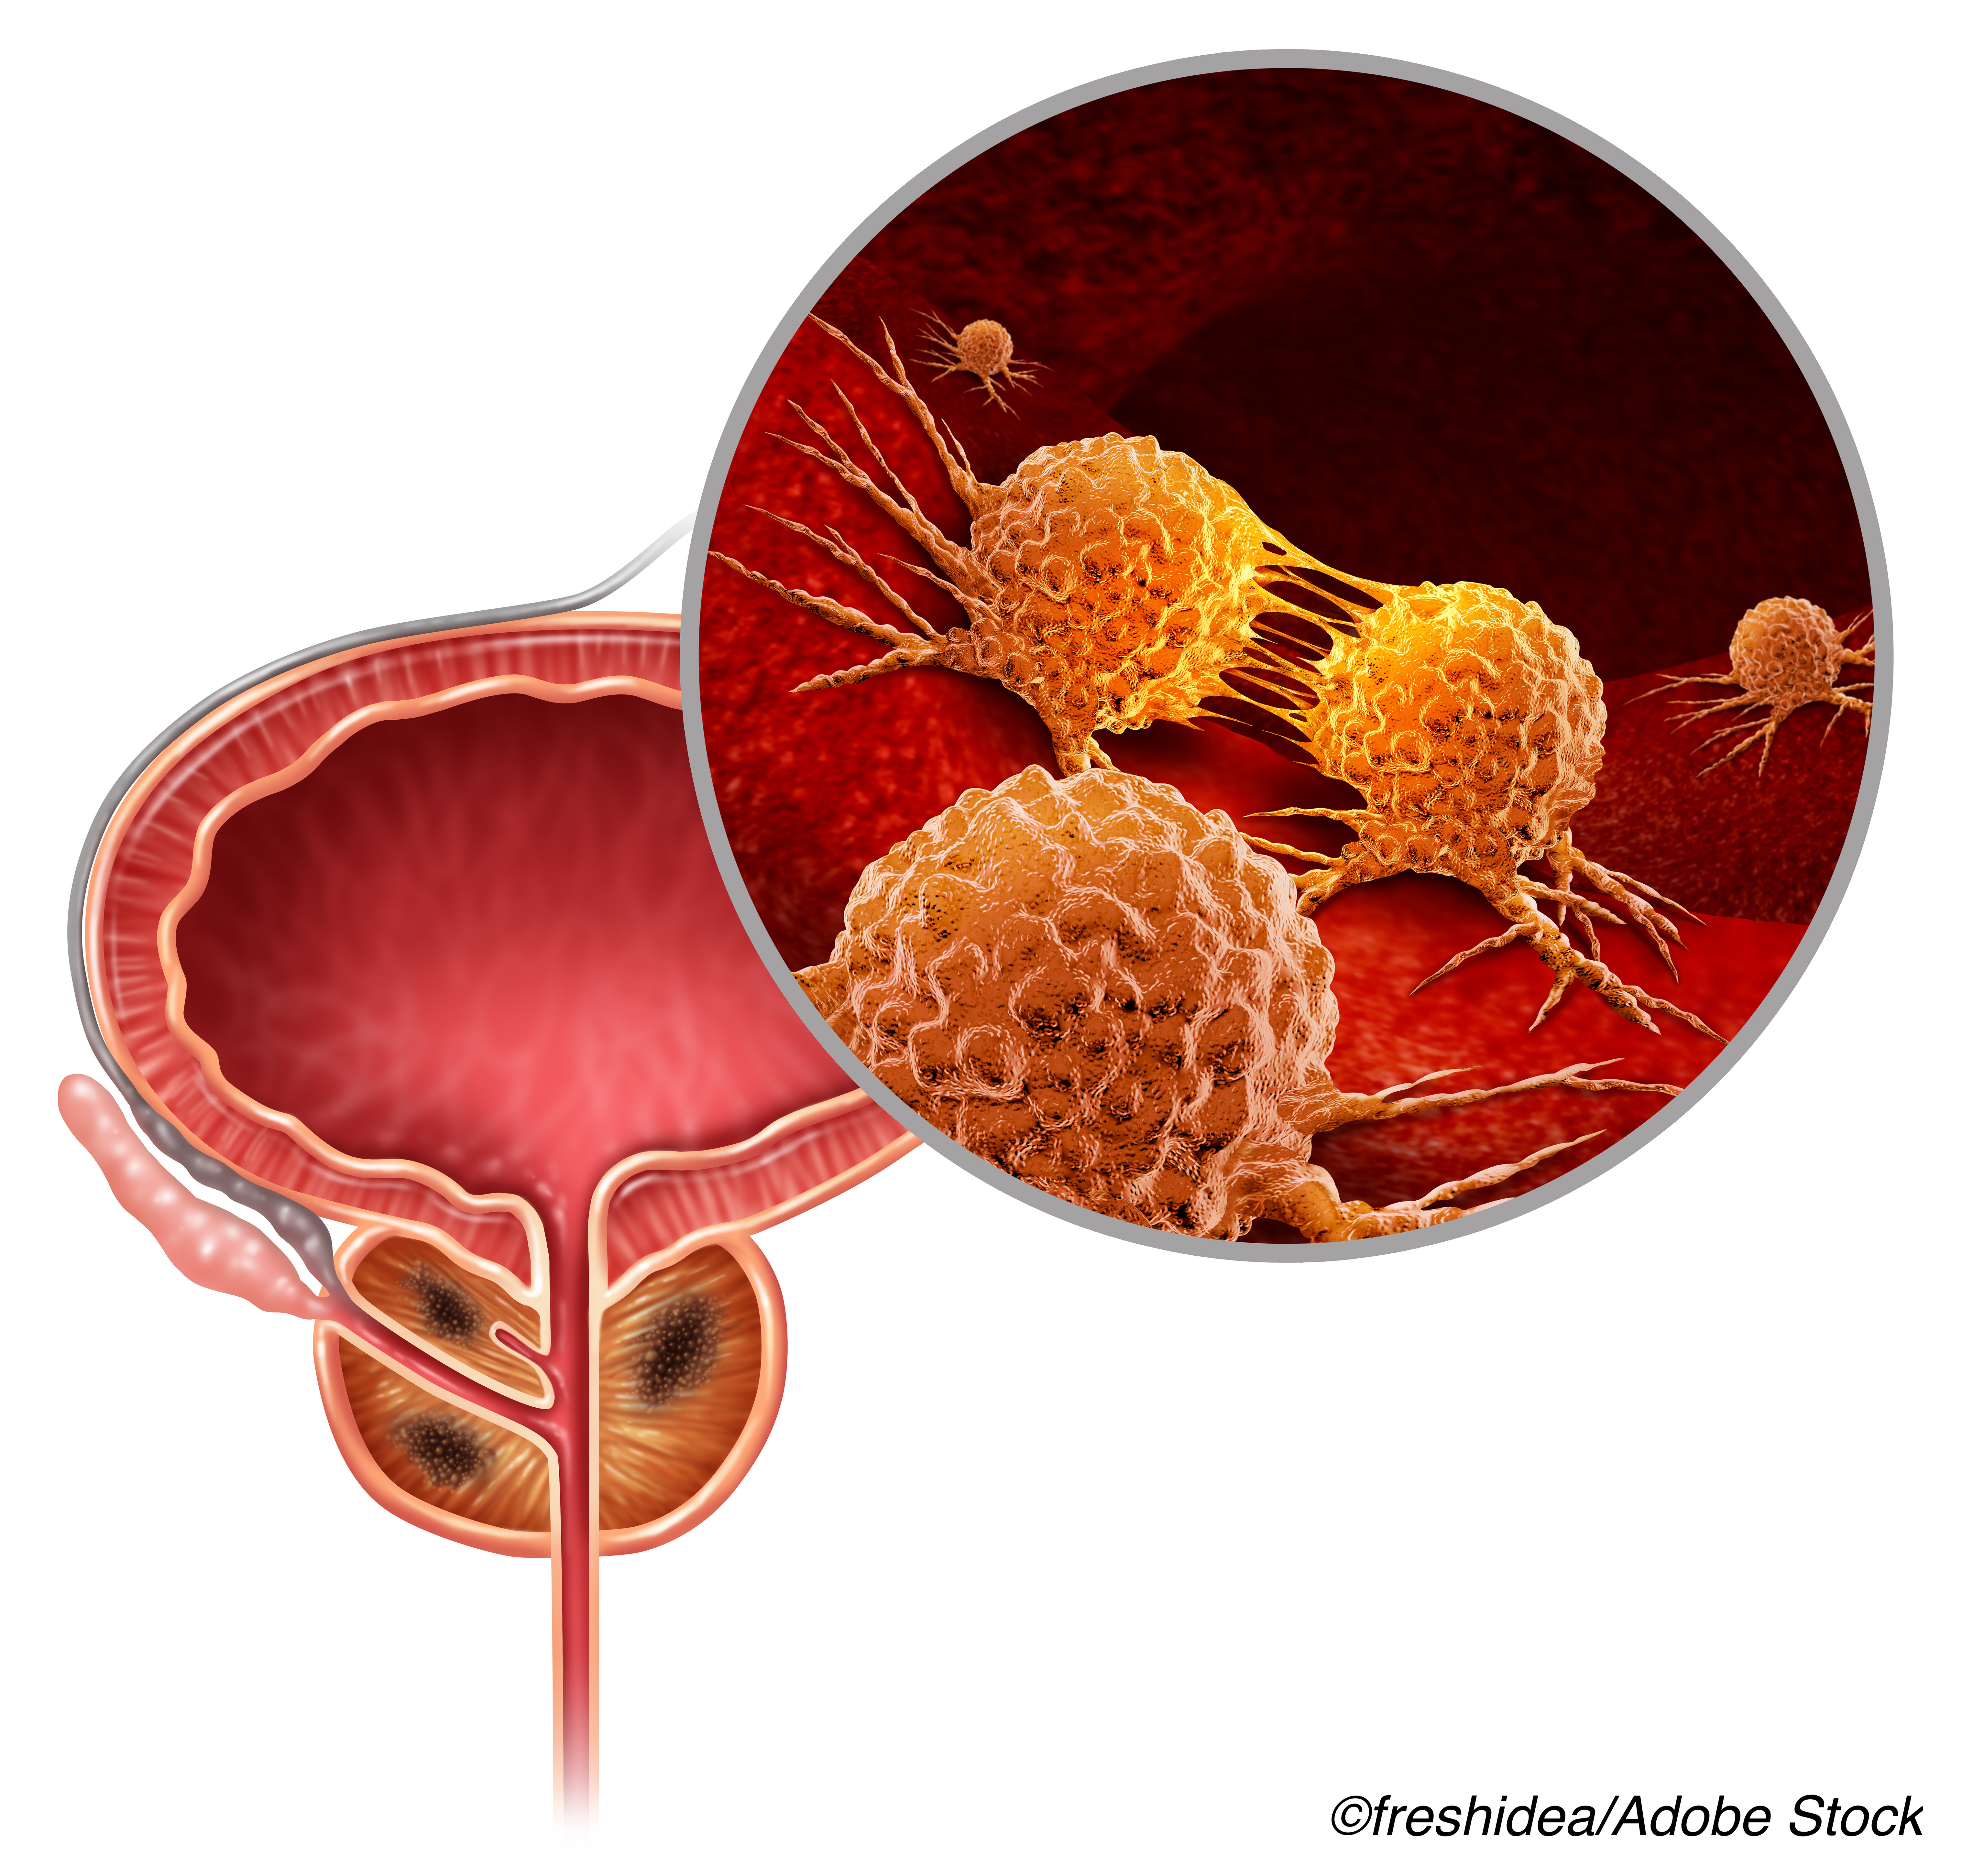 Consider Platinum-Based Therapies for Advanced Prostate Cancer